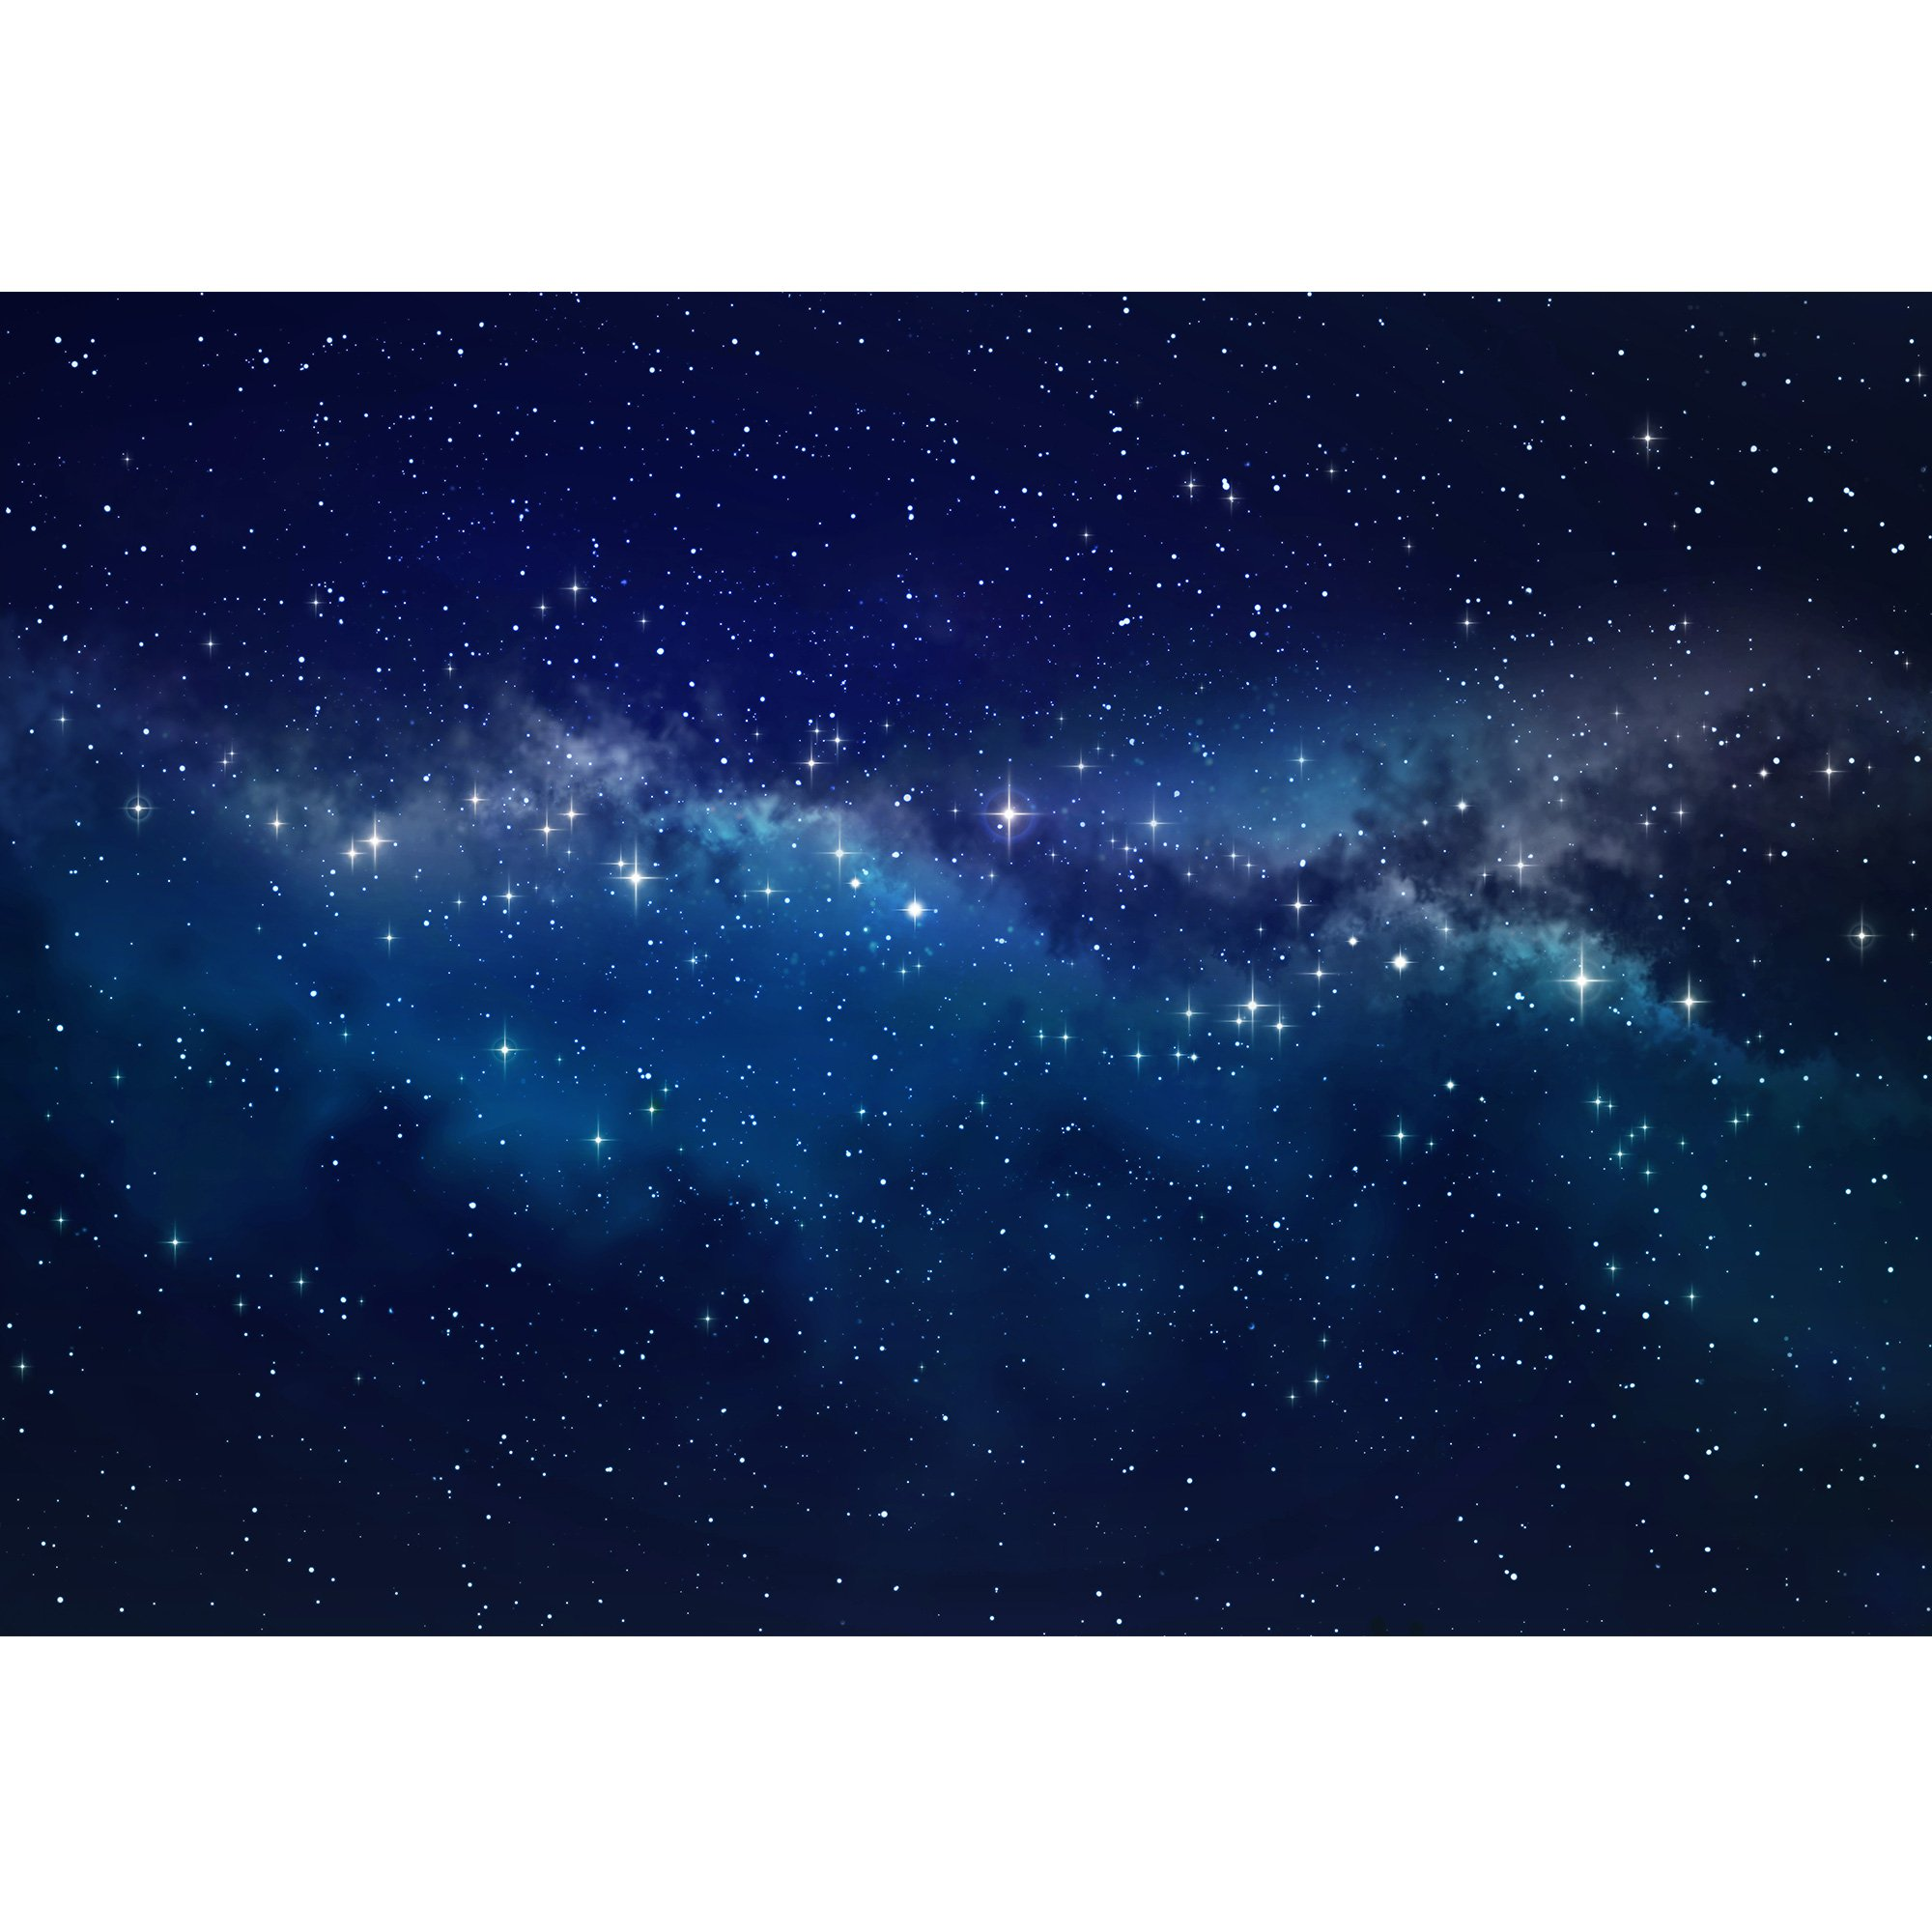 wall26 - Deep Space. High Definition Star Field Background - Removable Wall Mural | Self-Adhesive Large Wallpaper - 100x144 inches by wall26 (Image #2)